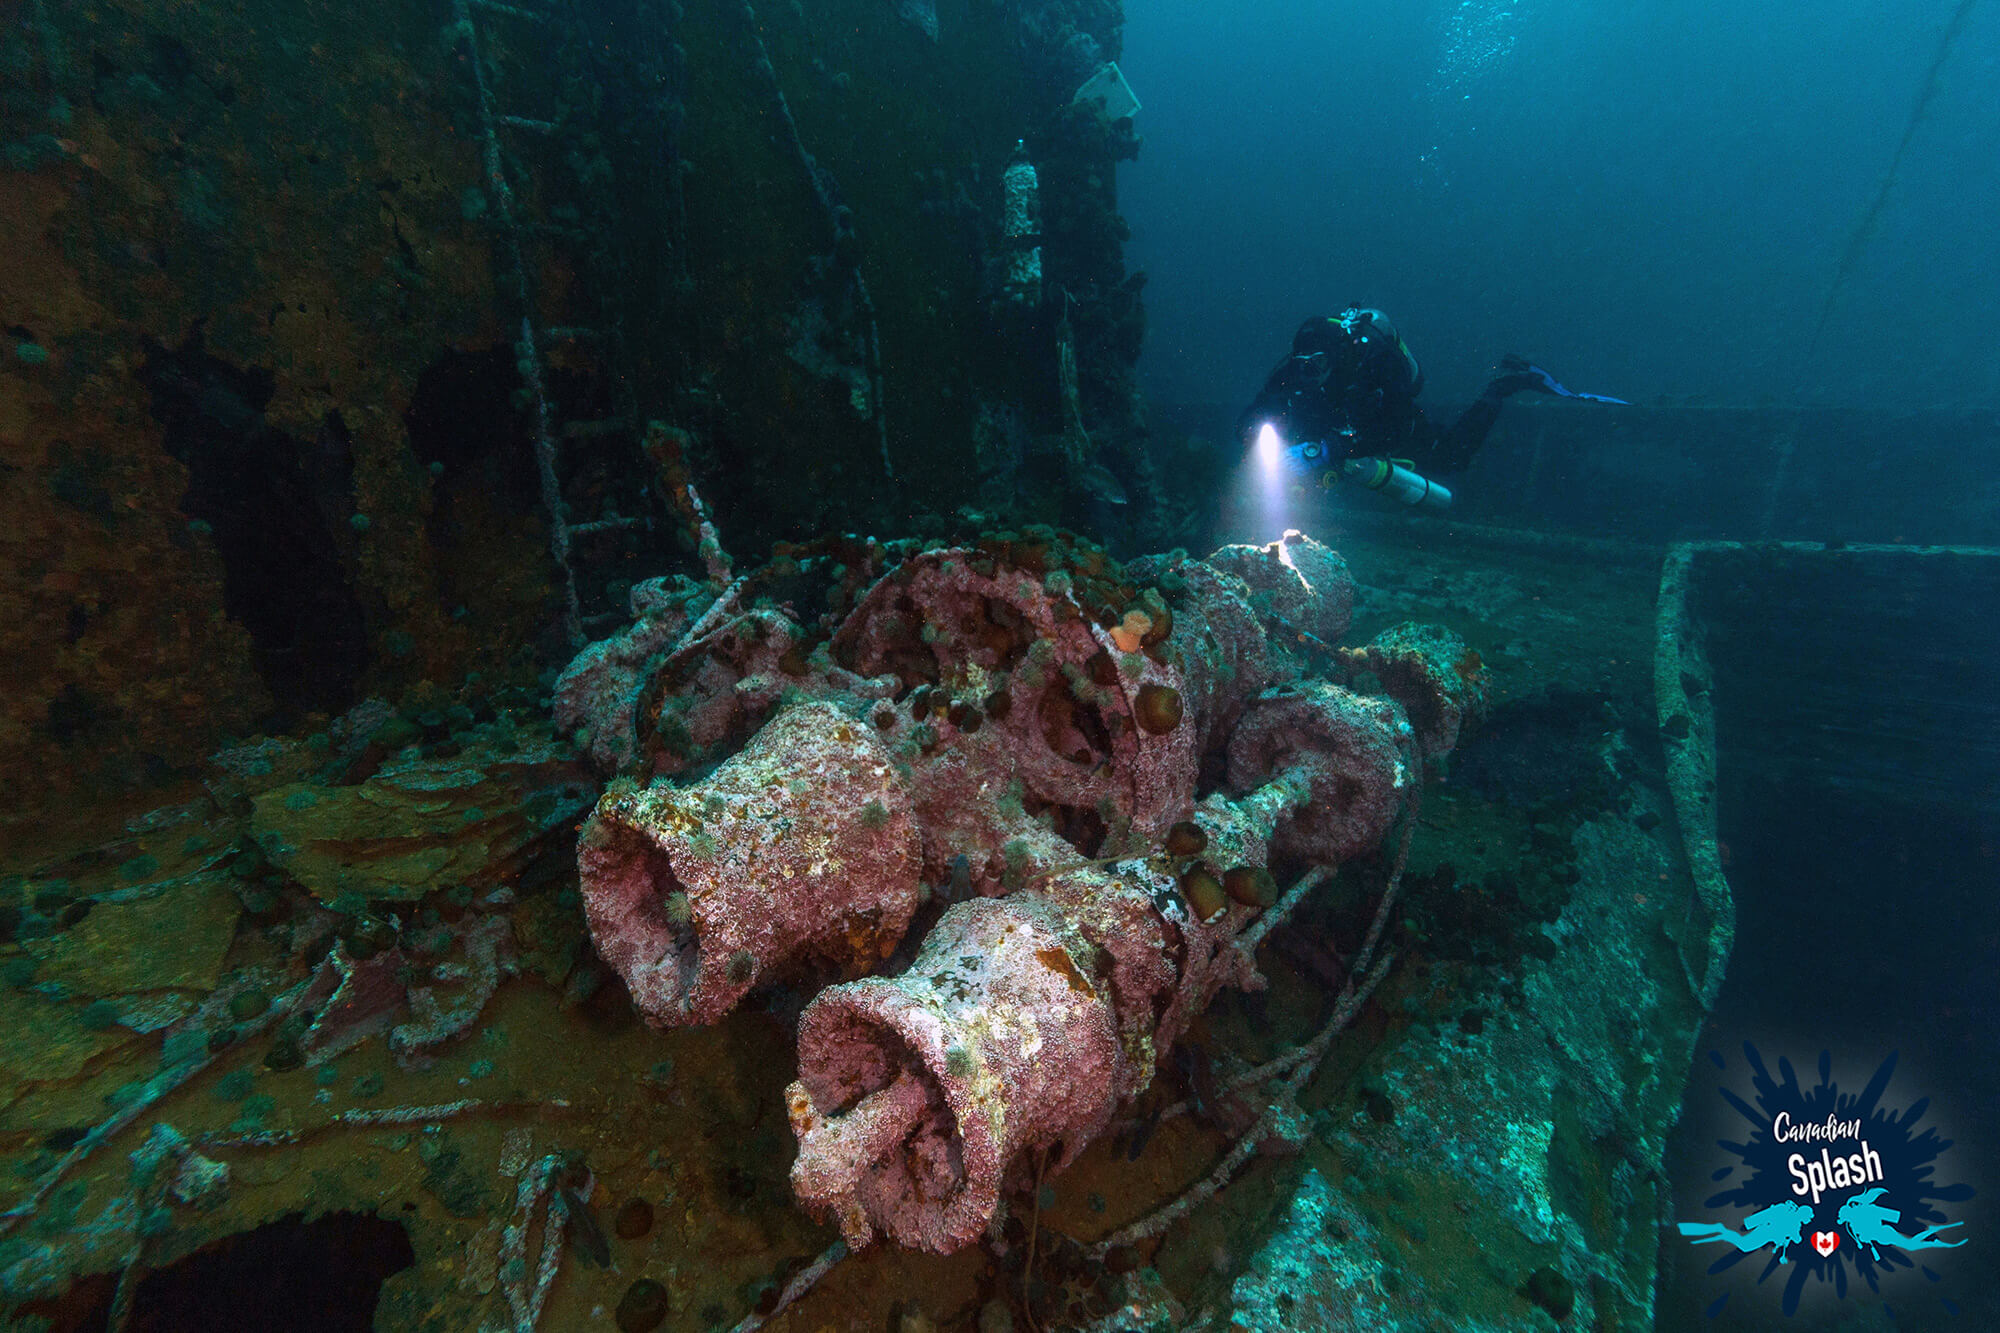 Joey Checking Out The Gear And Motor Of The Saganaga Shipwreck At Bell Island, Newfoundland, Canada